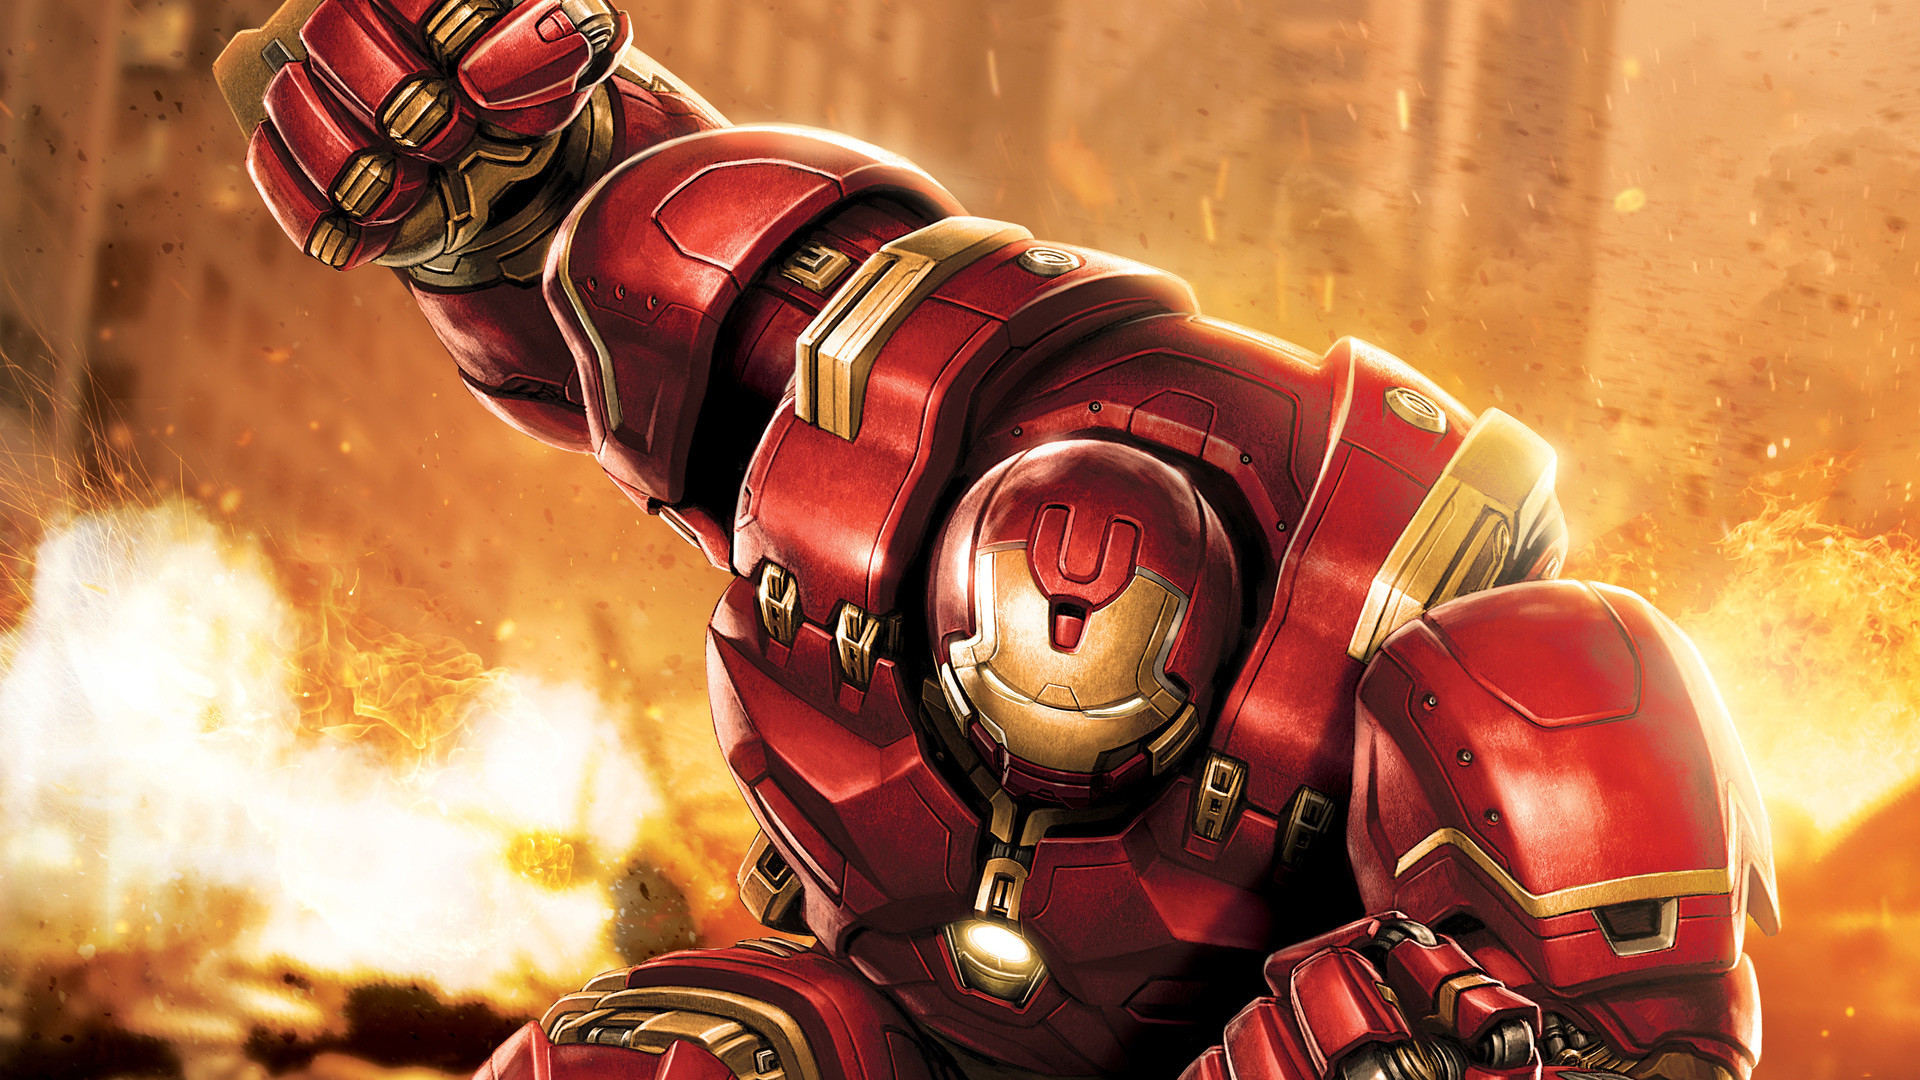 Res: 1920x1080, iron-hulkbuster-artwork-po.jpg